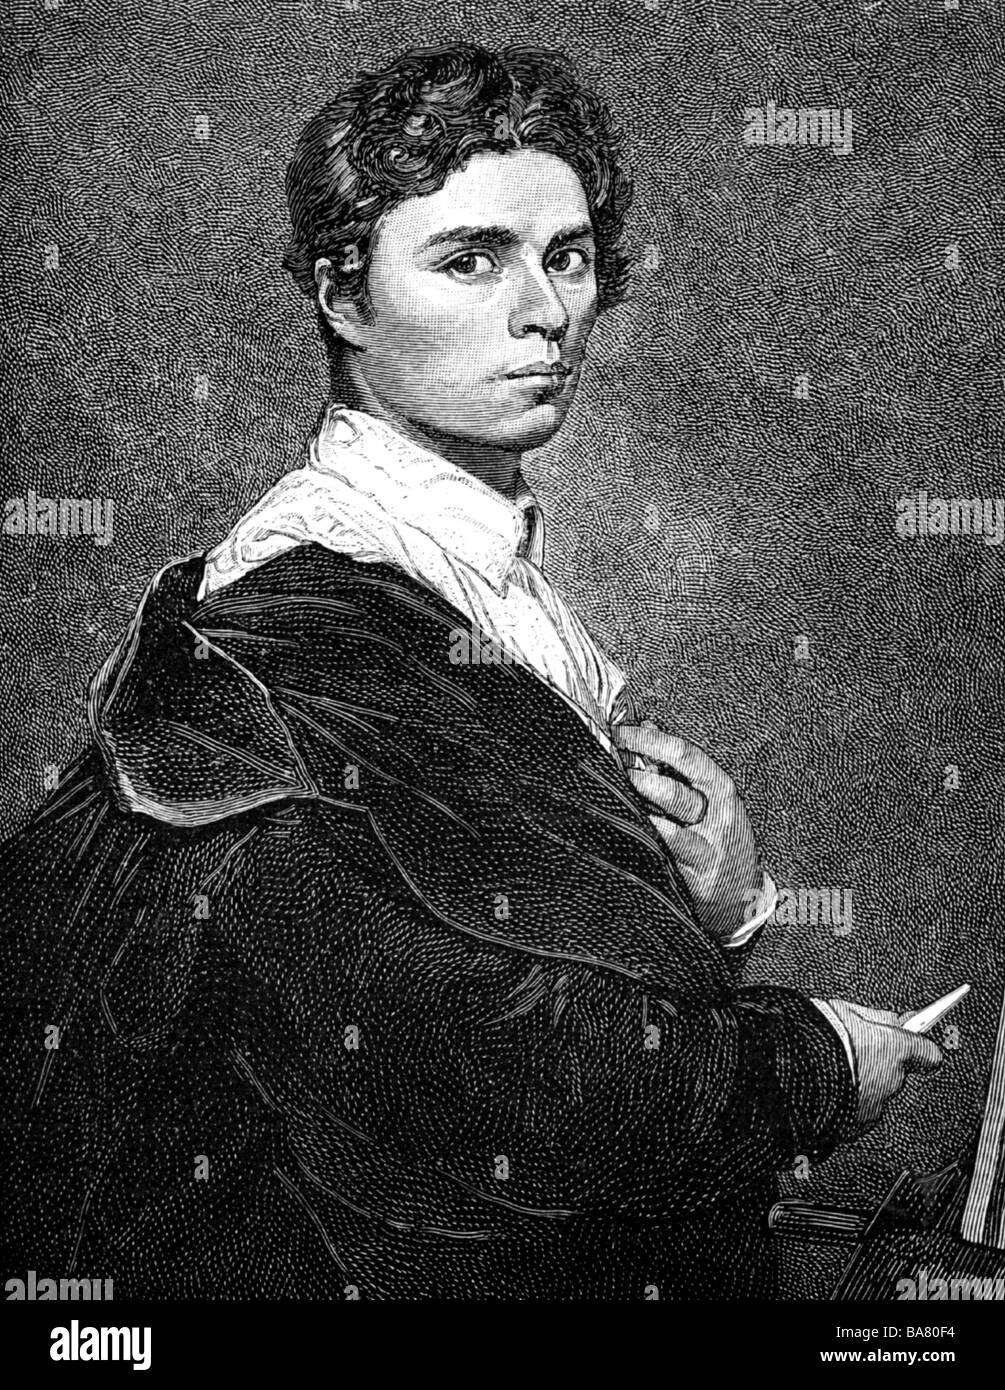 Ingres, Jean Auguste, 29.8.1780 - 31.1.1867, French painter, half length, self-half length, wood engraving, after - Stock Image